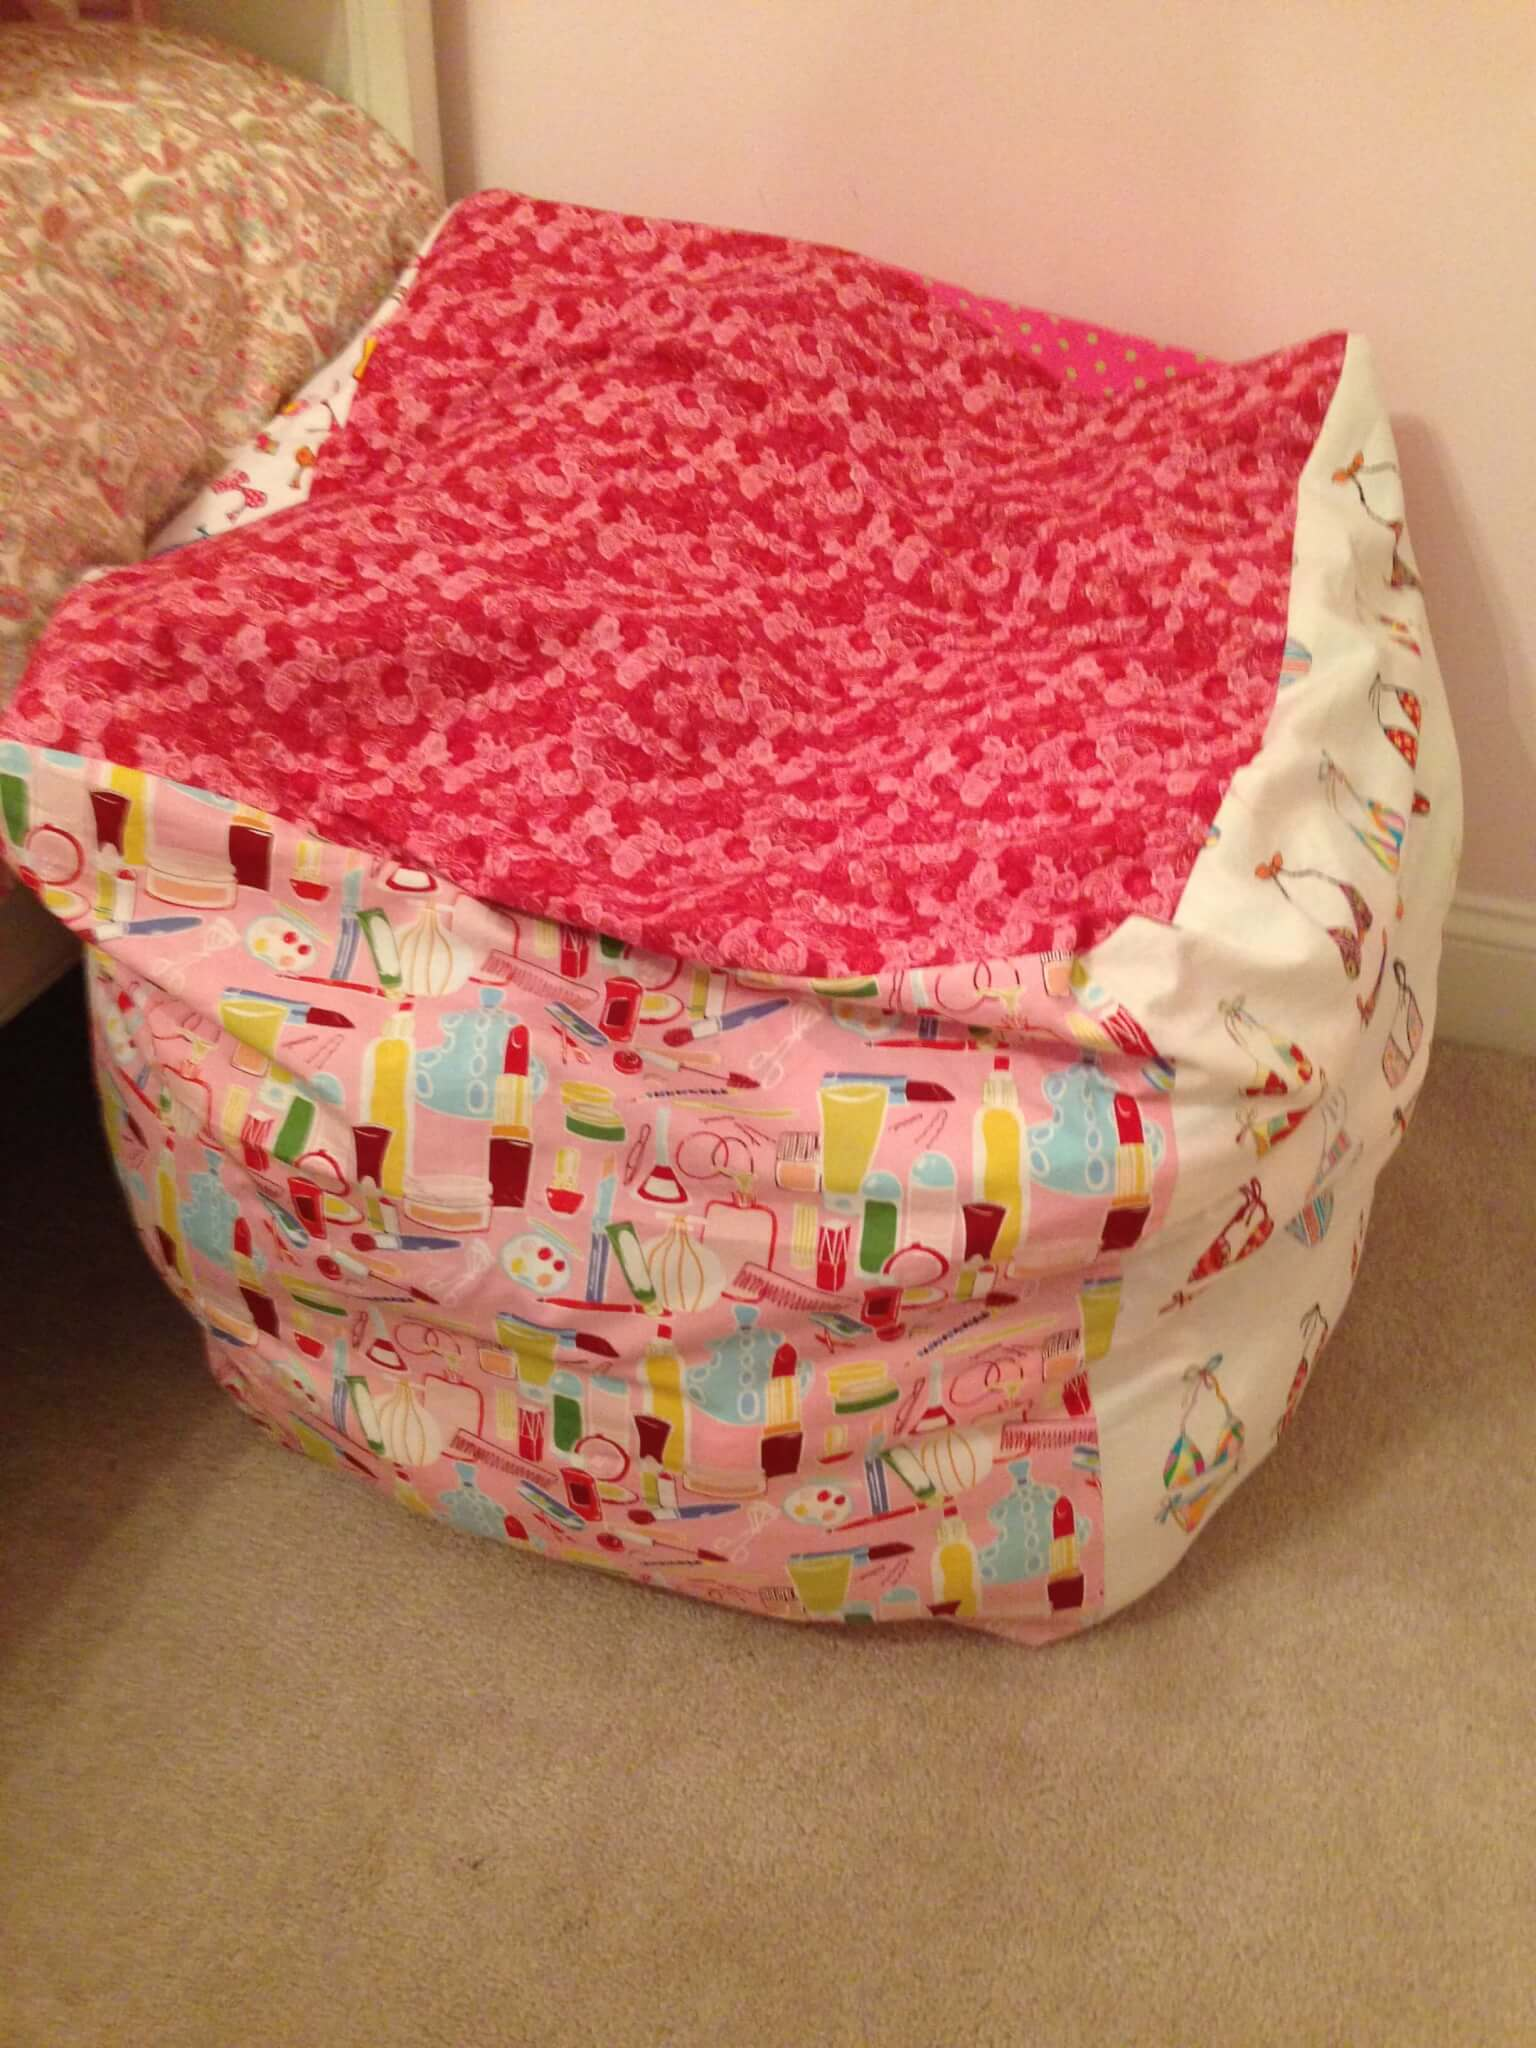 Diy Bean Bag Chair A Place To Hide The Mess